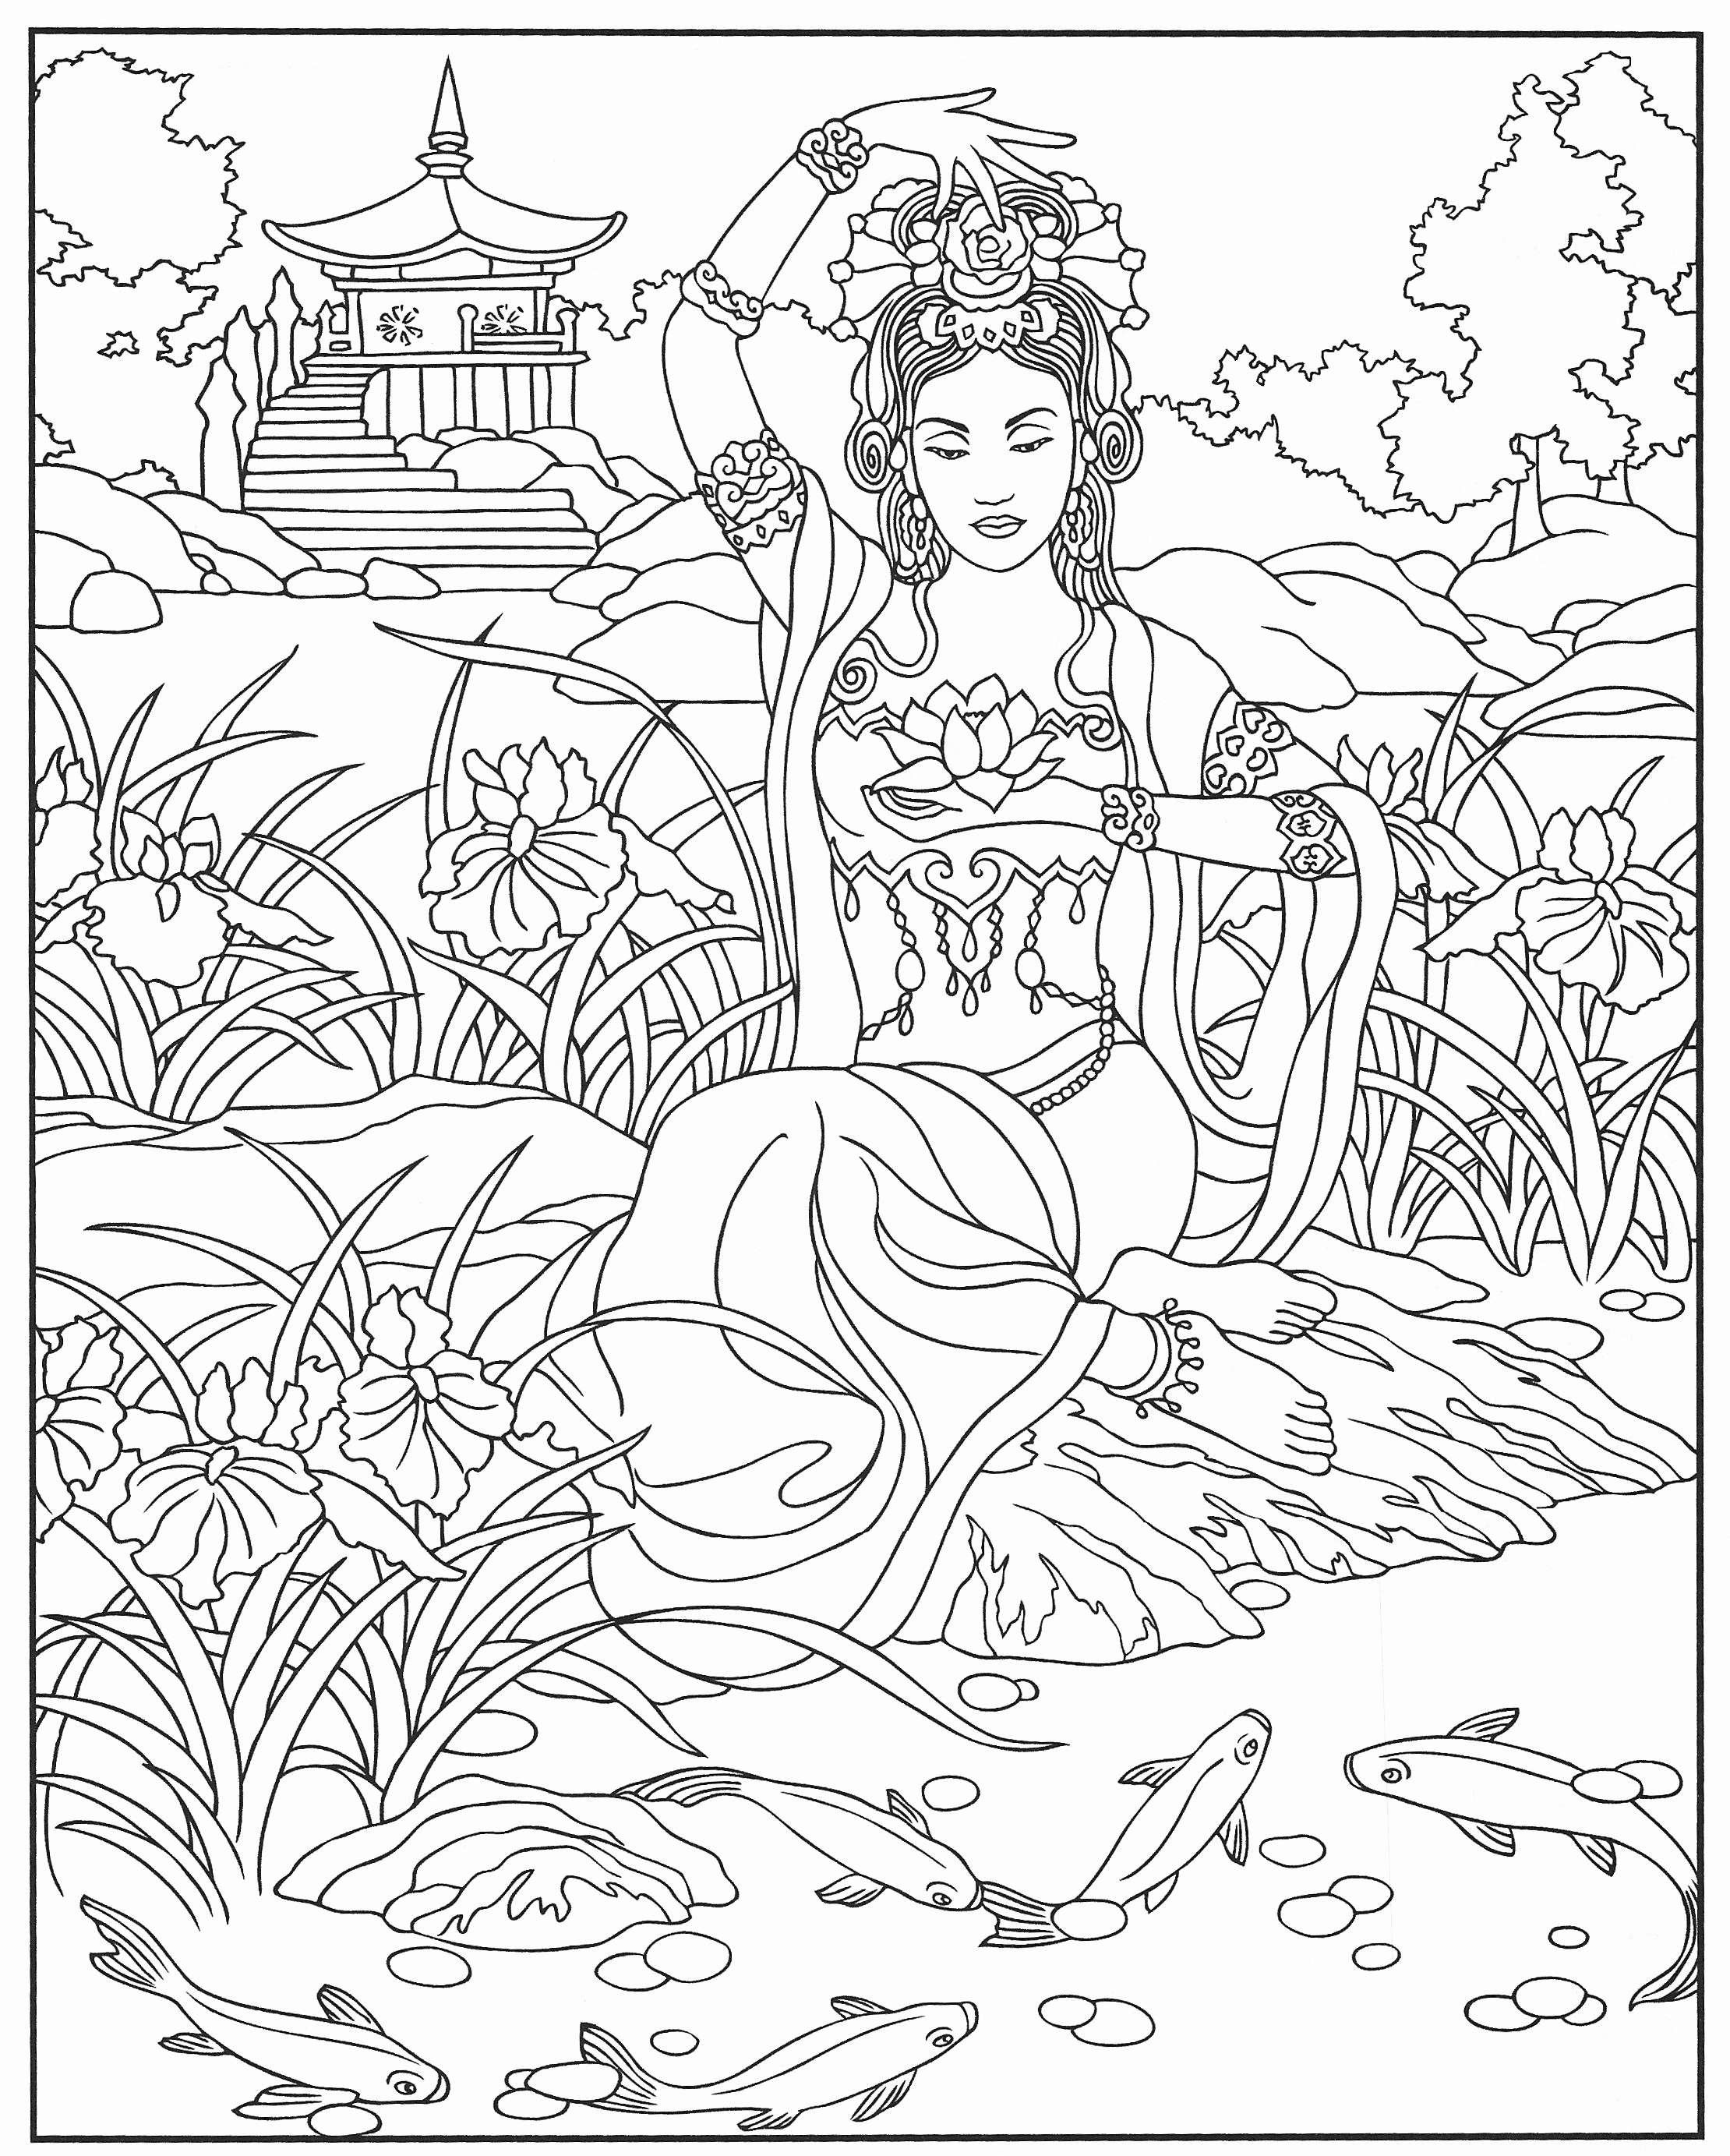 Disney princess thanksgiving coloring pages u from the thousand